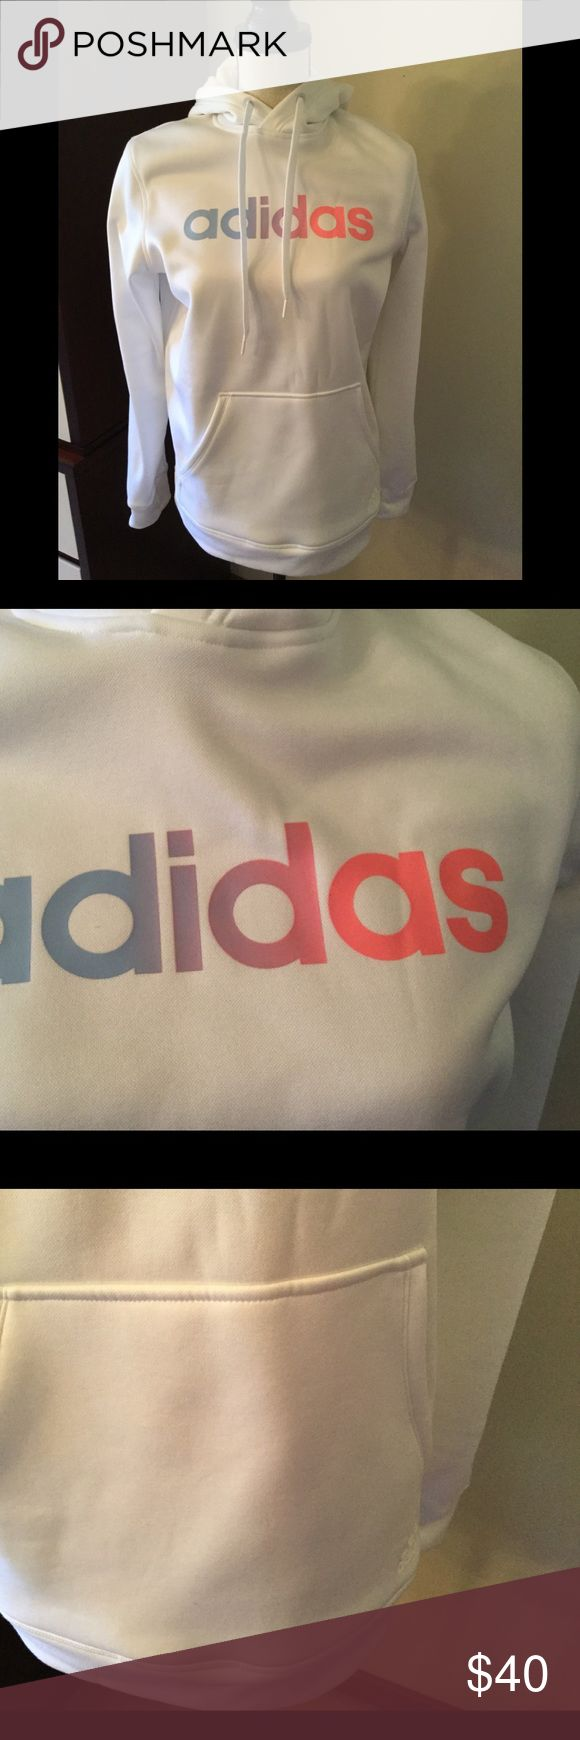 Adidas Clima Warm Sweatshirt 🎿🎾⚾️Adidas Ladies Clima Warm Hoodie Worn one time, perfect condition 💞💖super soft fabric, keeps you warm and cozy. Relaxed fit at shoulders , white with Pastel Logo.   Length 27 in Armhole to wrist 21 in Machine Washable, mild detergent  Imported   Perfect for daily wear or sports!☃️⚾️🤾‍♀️⛷ Adidas Tops Sweatshirts & Hoodies